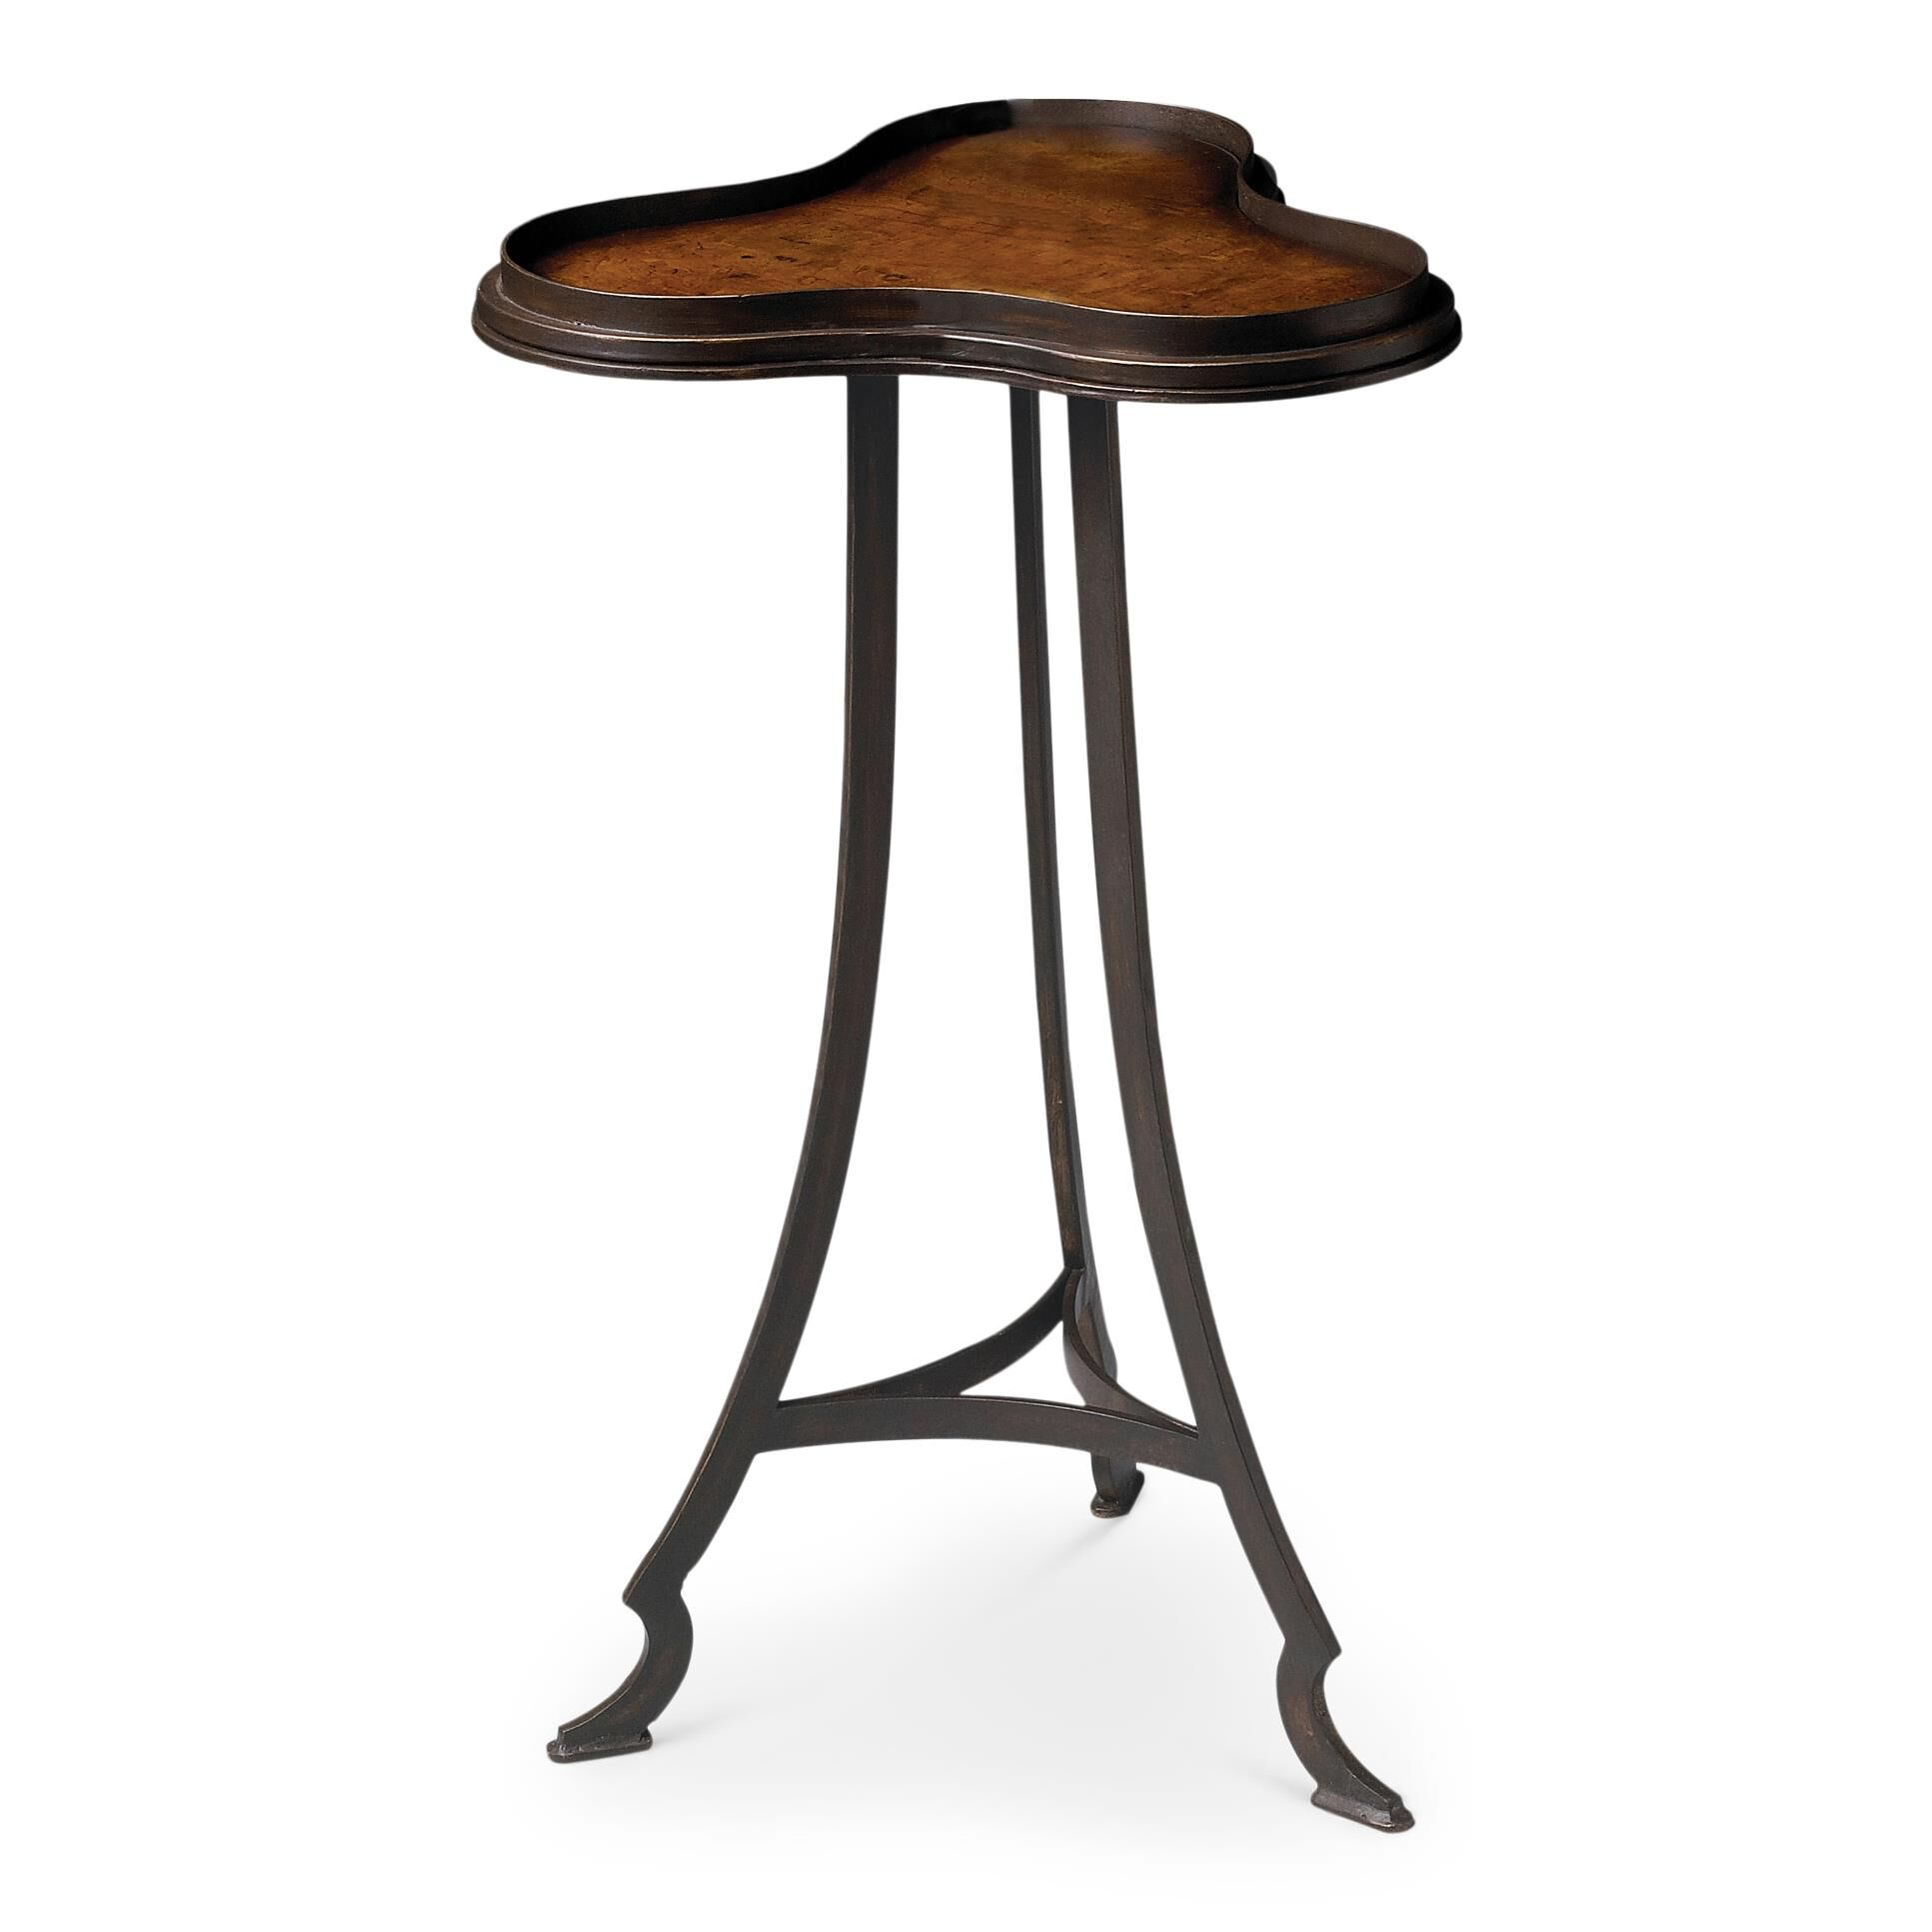 Butler Specialty Company Metalworks Accent Table Metalworks - 1582025 - Traditional